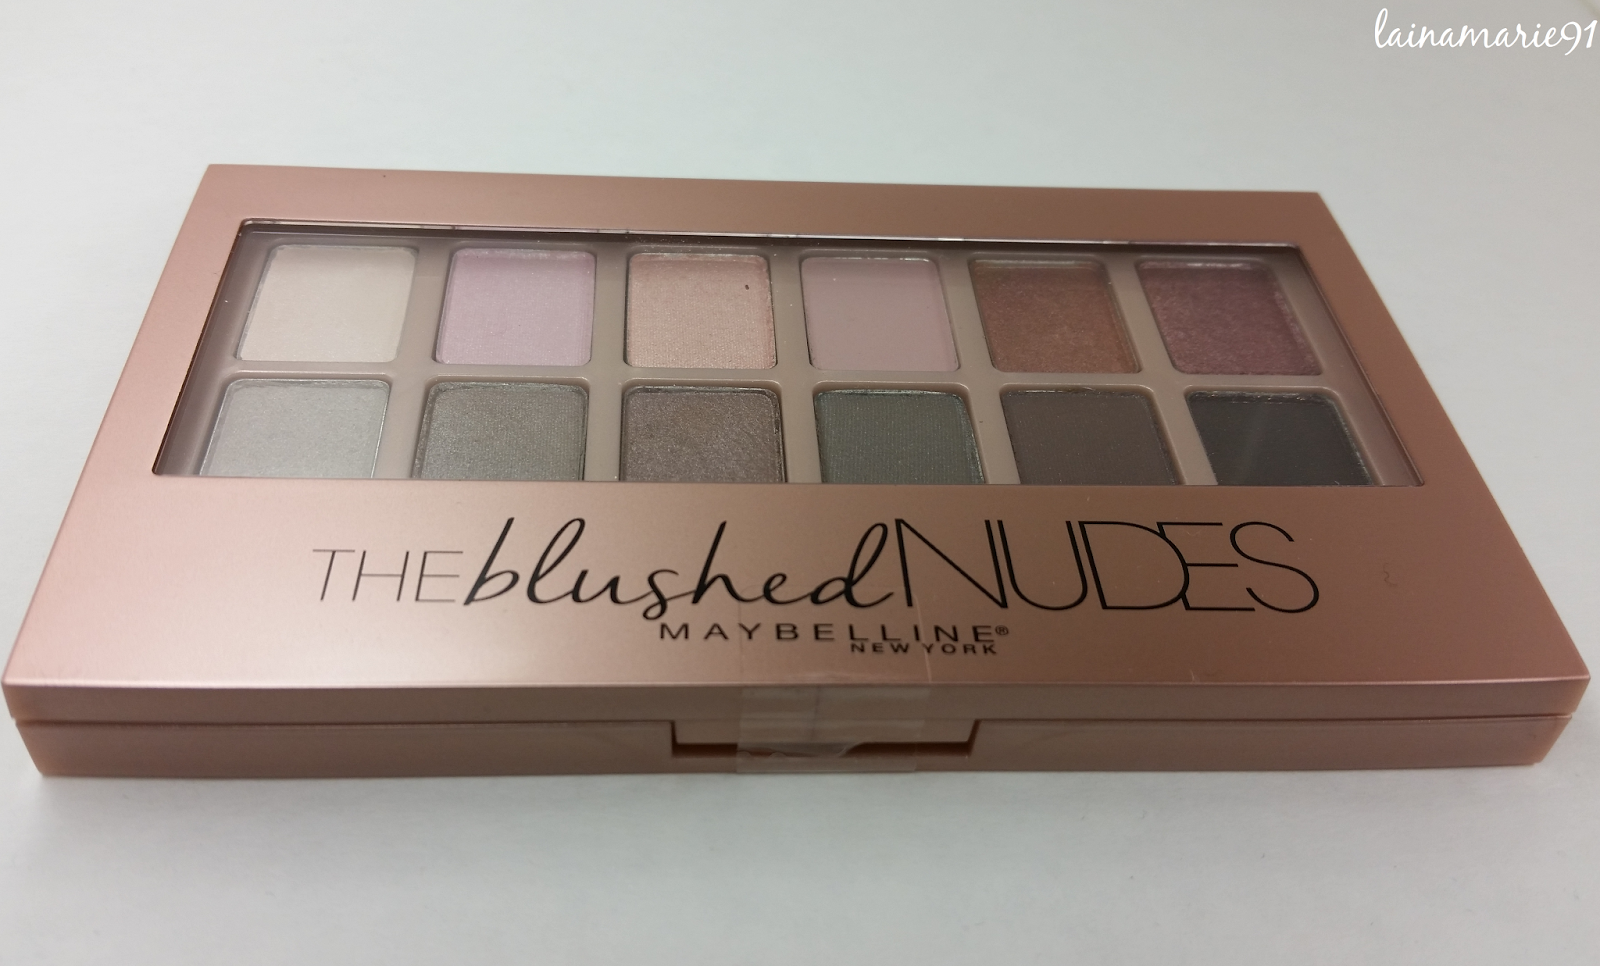 Lainamarie91 Maybelline The Blushed Nudes 12 Pan -6954